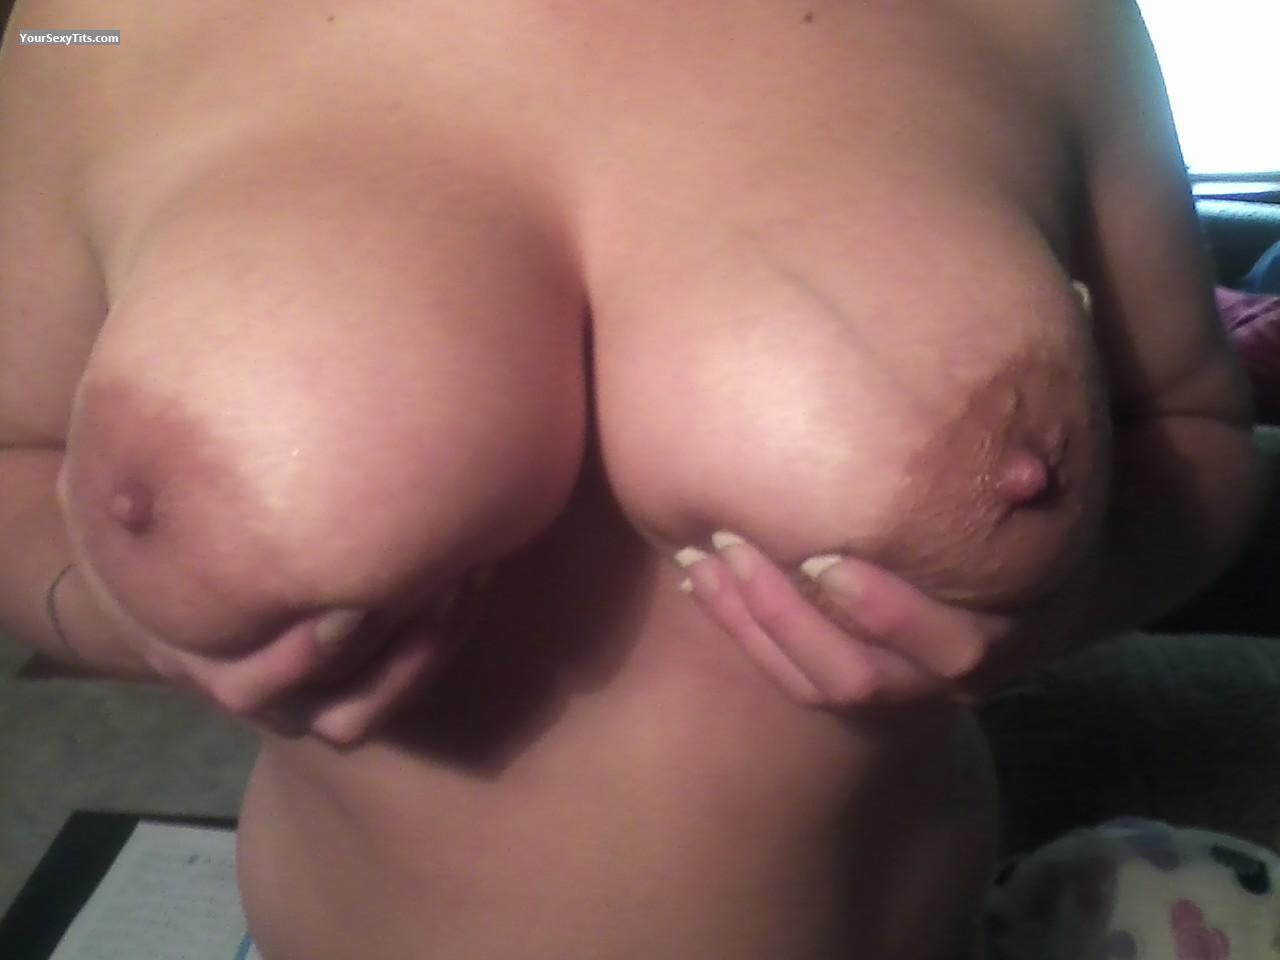 Tit Flash: Very Big Tits - Ibet from United States